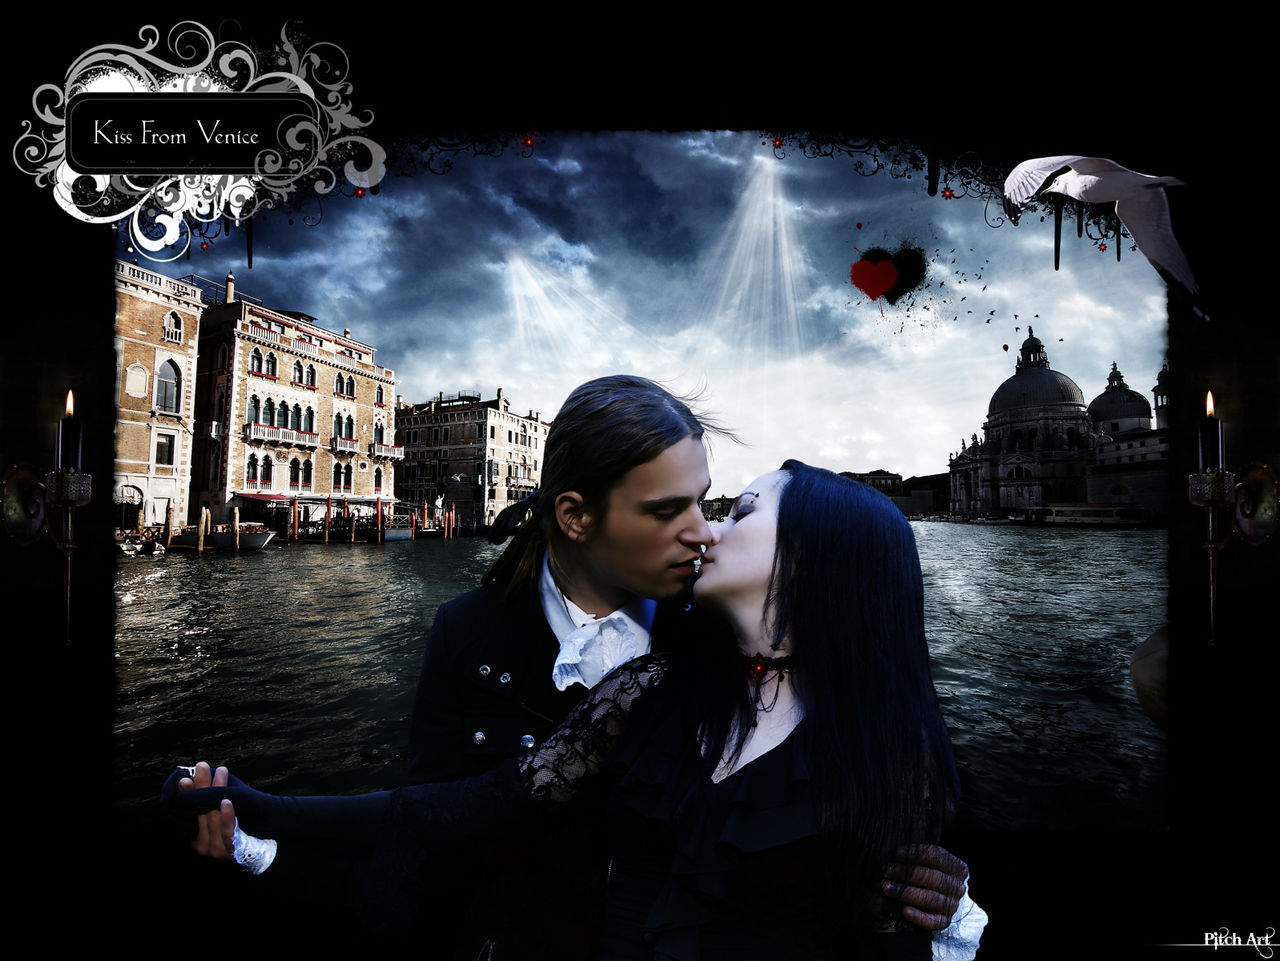 Studio Pitch Art Kiss From Venice ''Color''